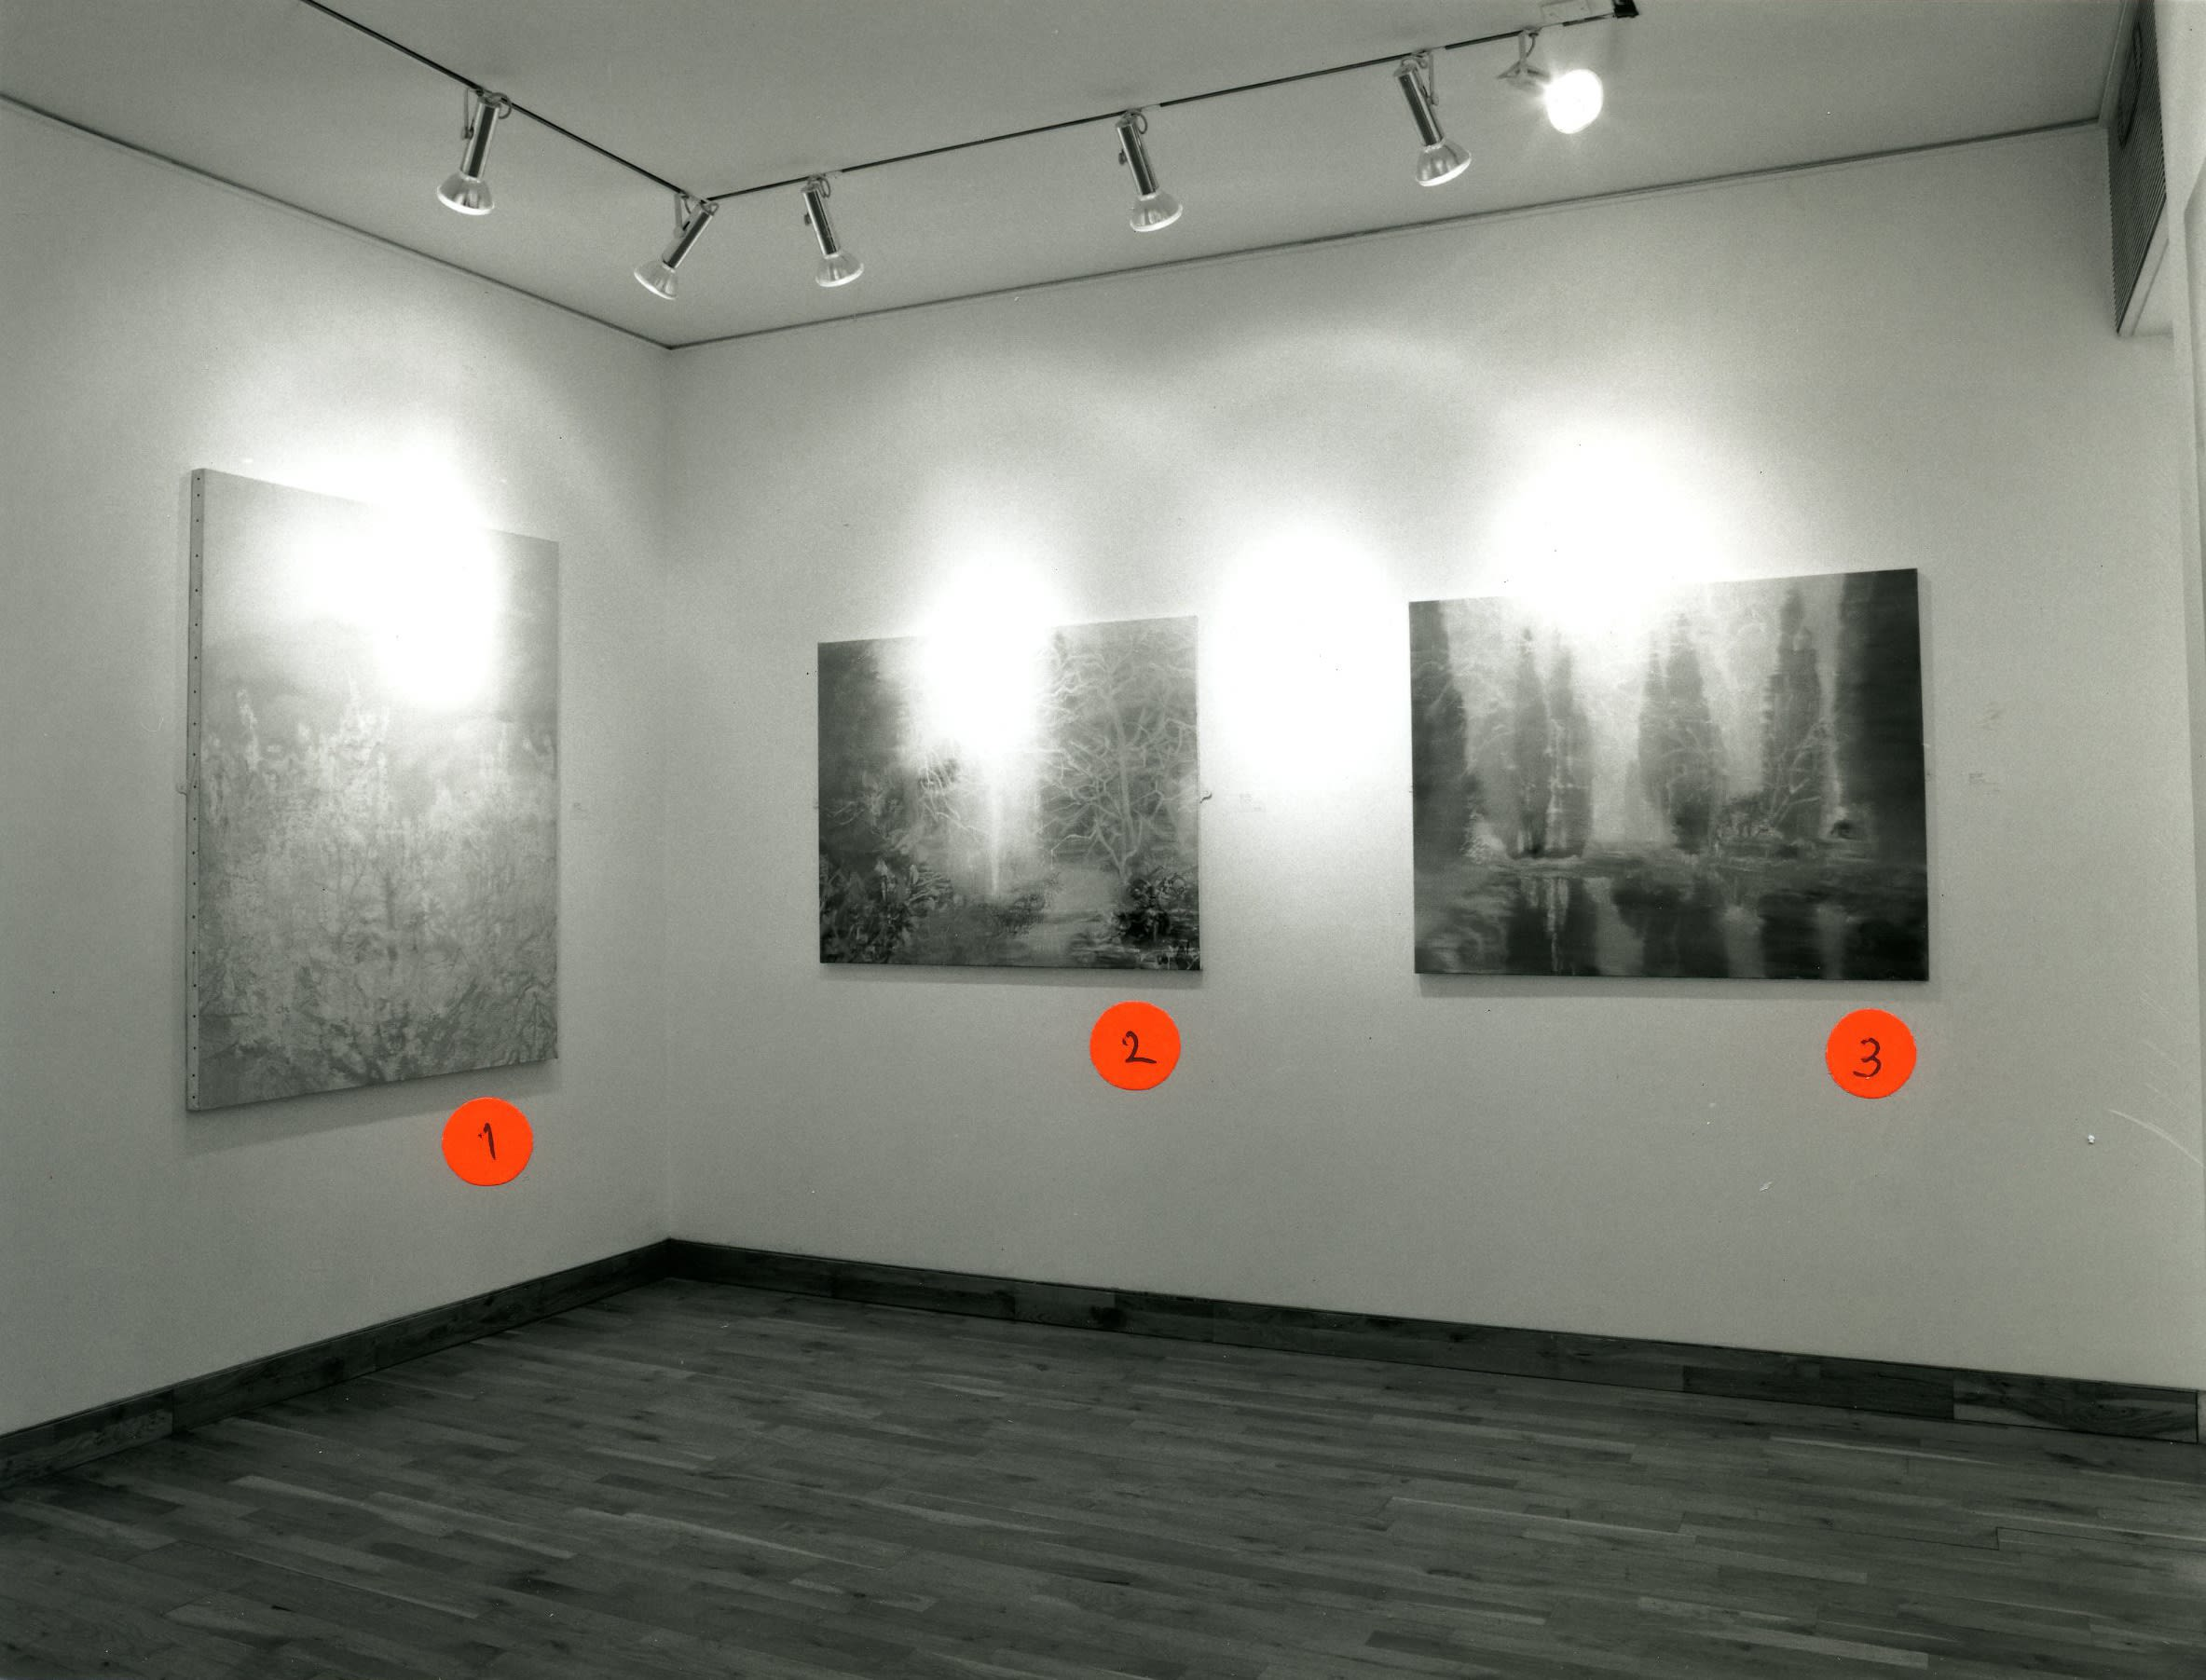 """<span class=""""link fancybox-details-link""""><a href=""""/exhibitions/157/works/image_standalone685/"""">View Detail Page</a></span><p>MARINA KARELLA 